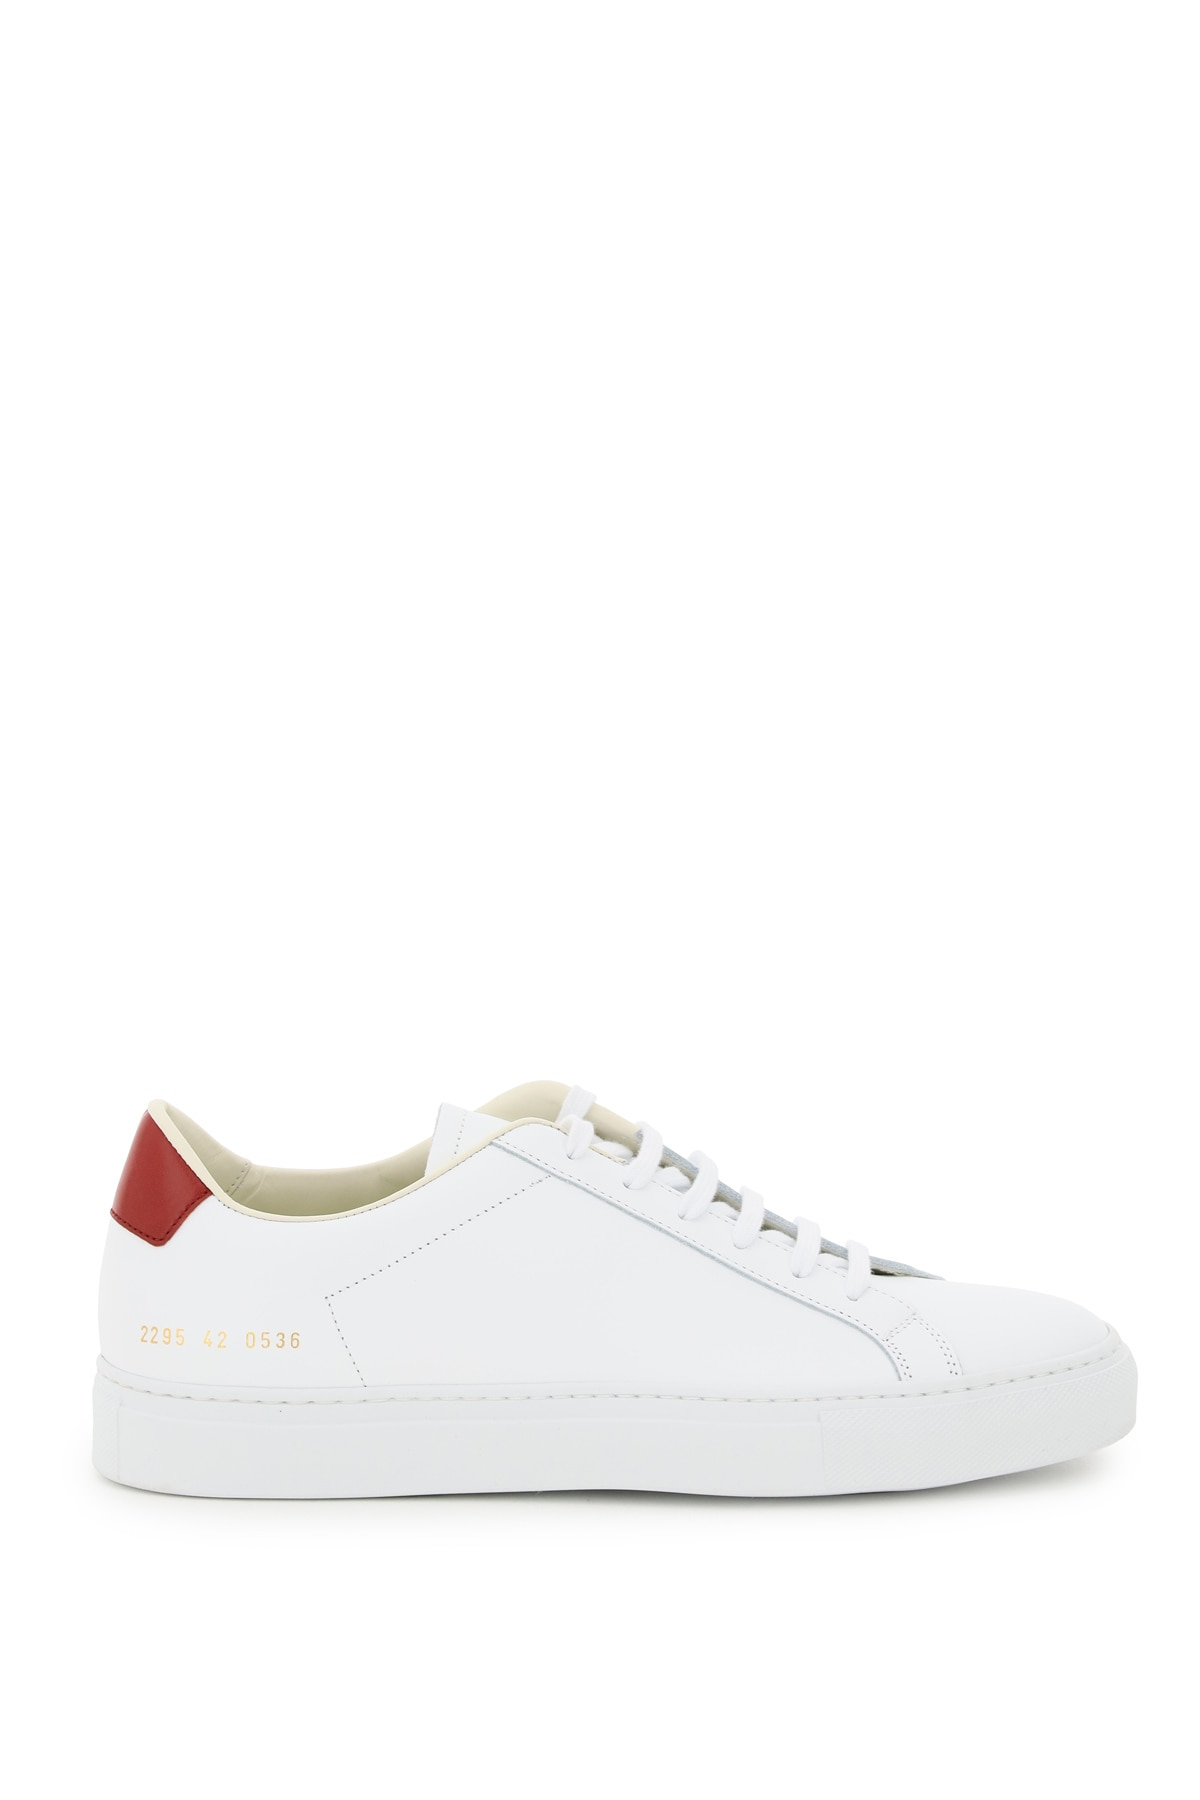 COMMON PROJECTS RETRO LOW LEATHER SNEAKERS 43 White, Red Leather